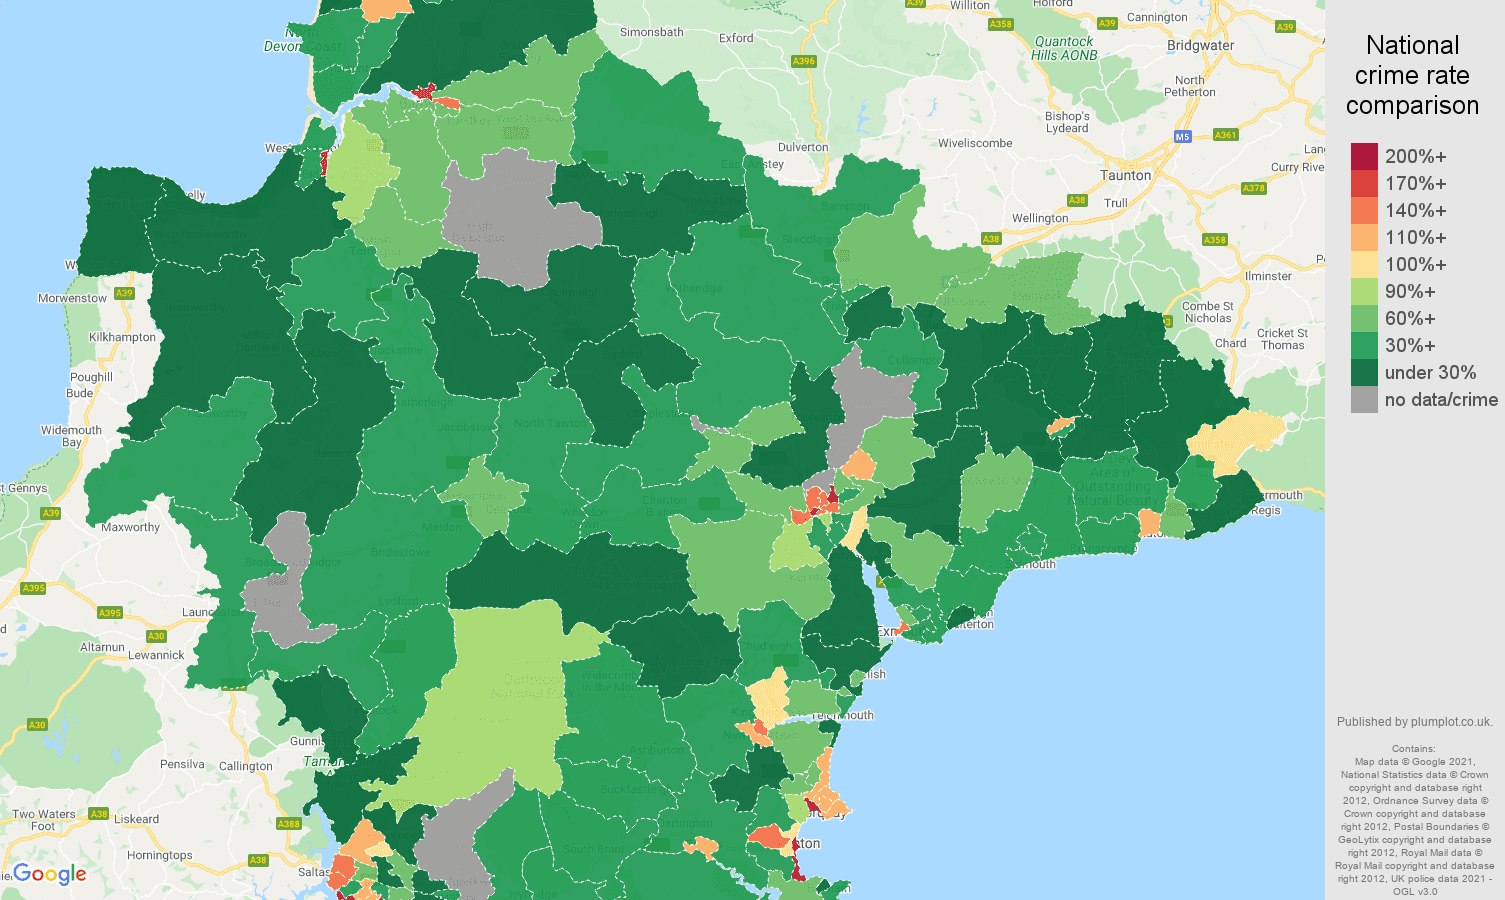 Devon drugs crime rate comparison map